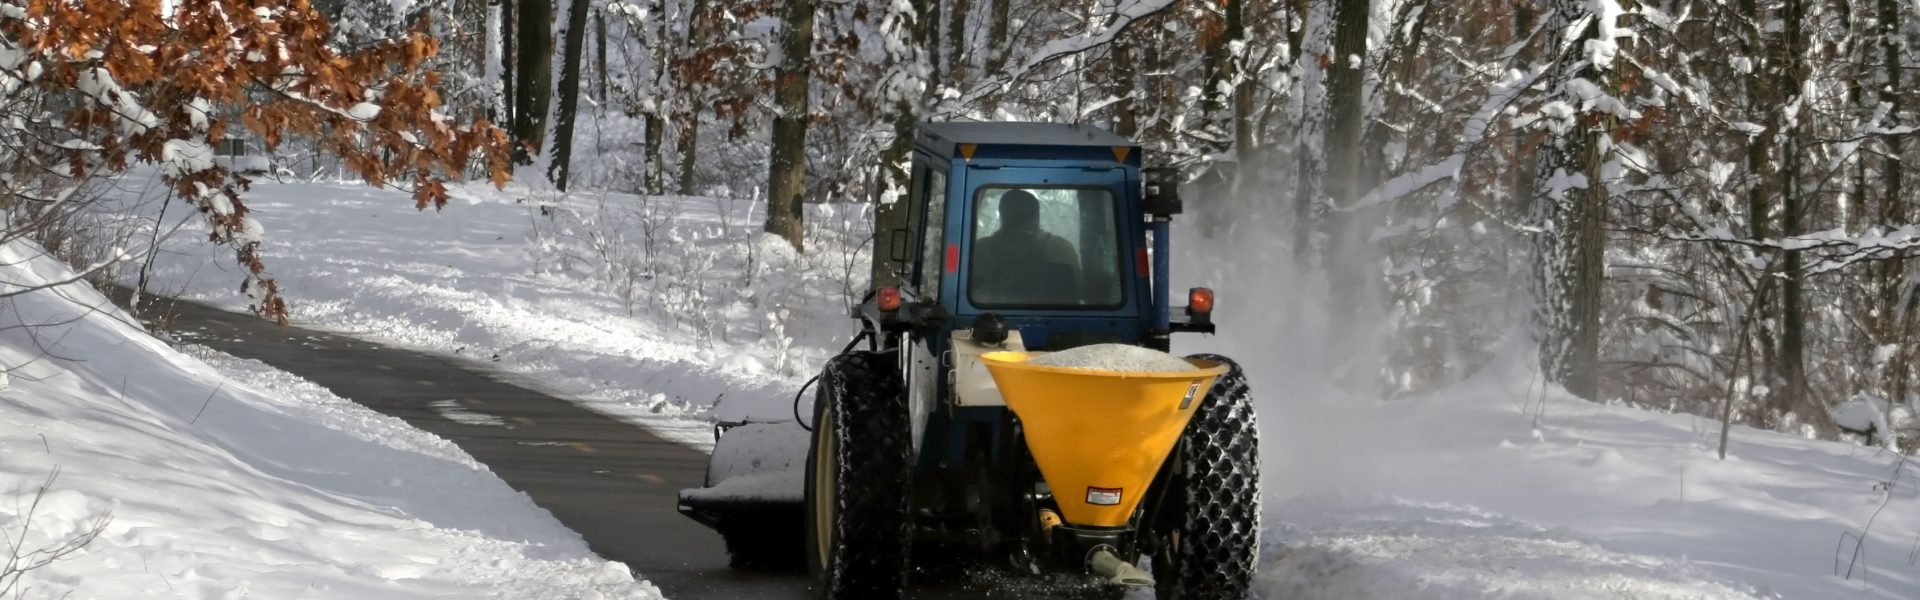 snow plowing machine cleaning the bike trail during winter time